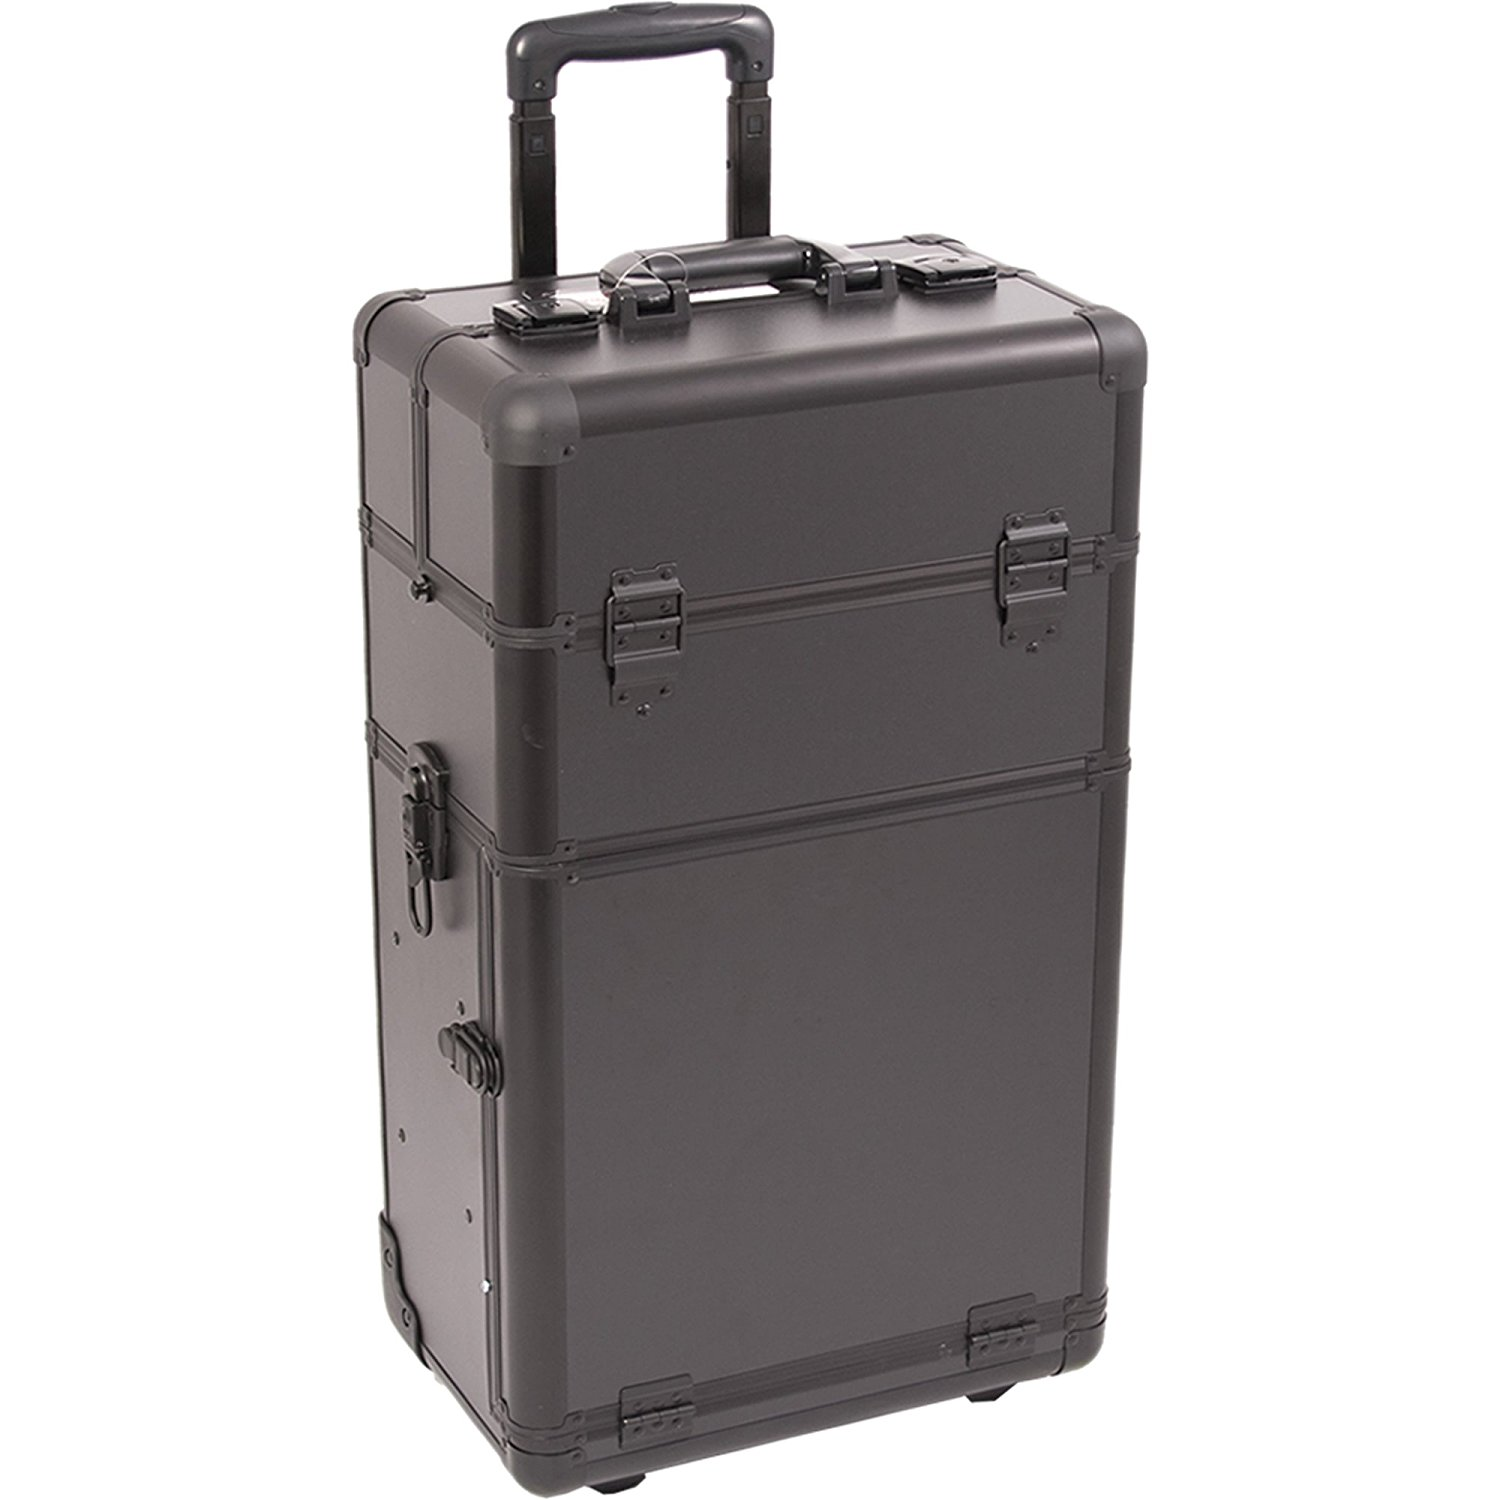 org drawers important five large trunks vintage for at f louis furniture collectibles set sale suitcase of id home vuitton with pieces more accents luggage